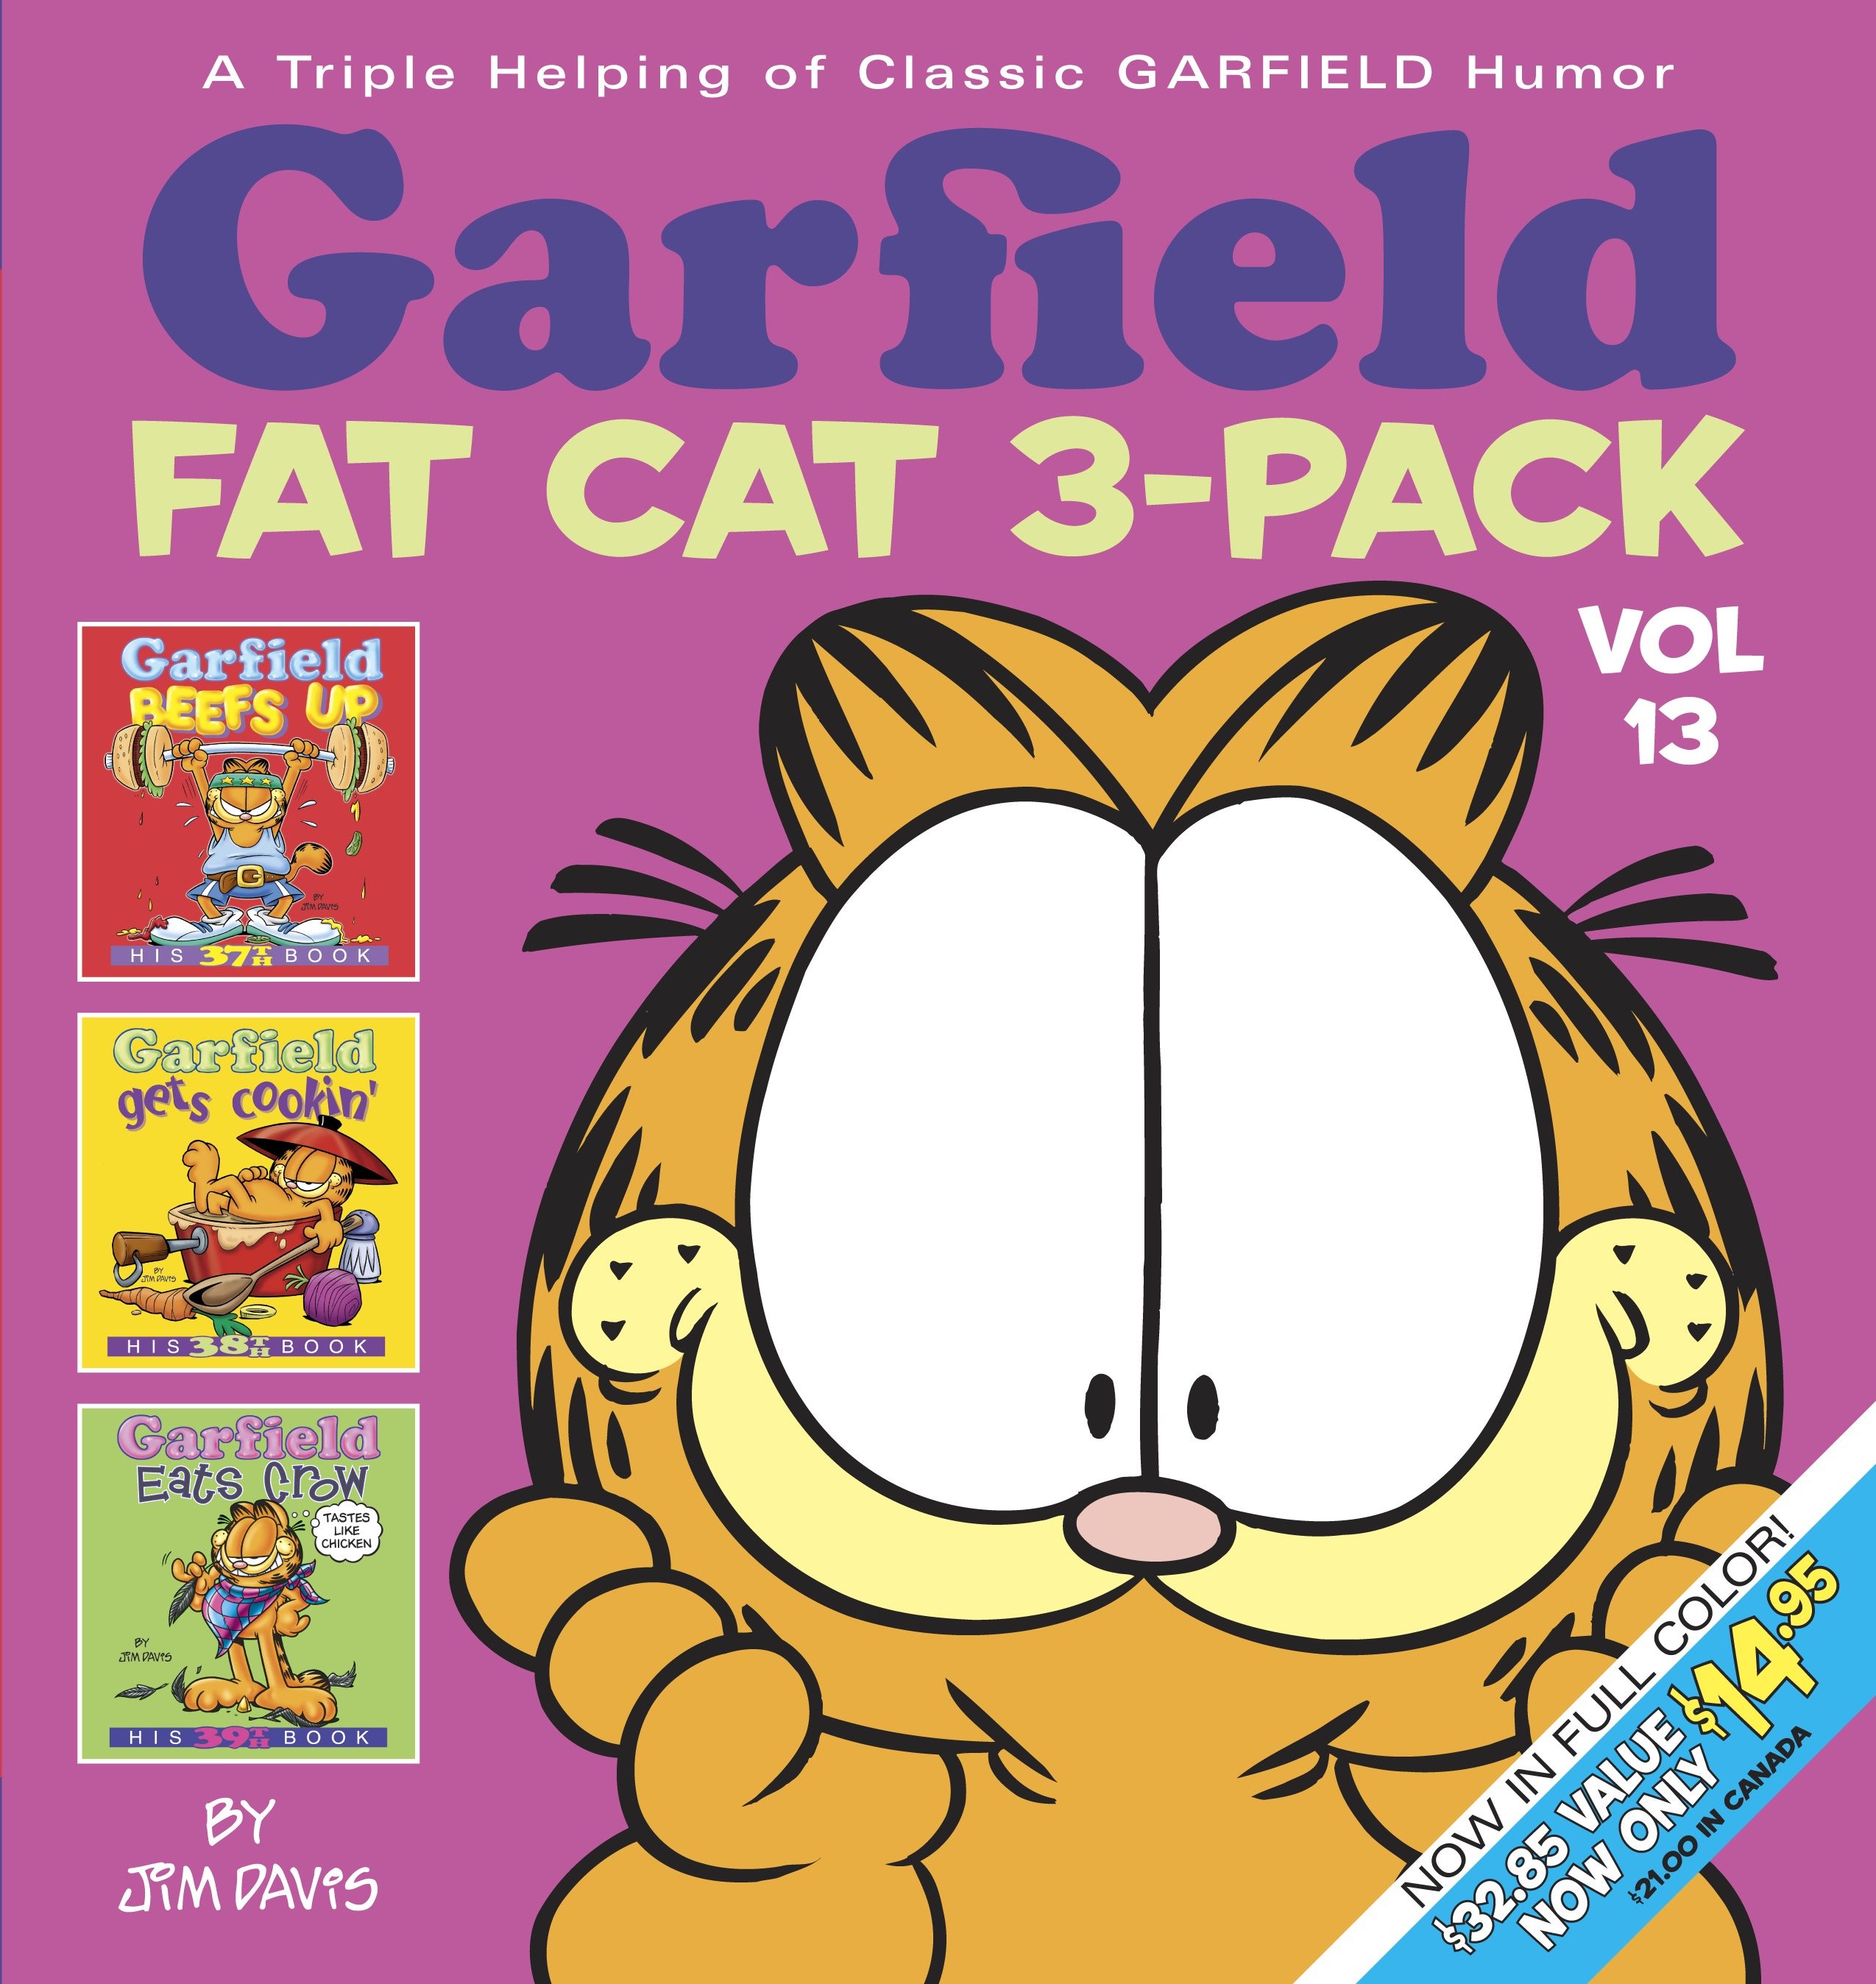 Garfield Fat Cat 3-Pack #13 : A Triple Helping of Classic Garfield Humor